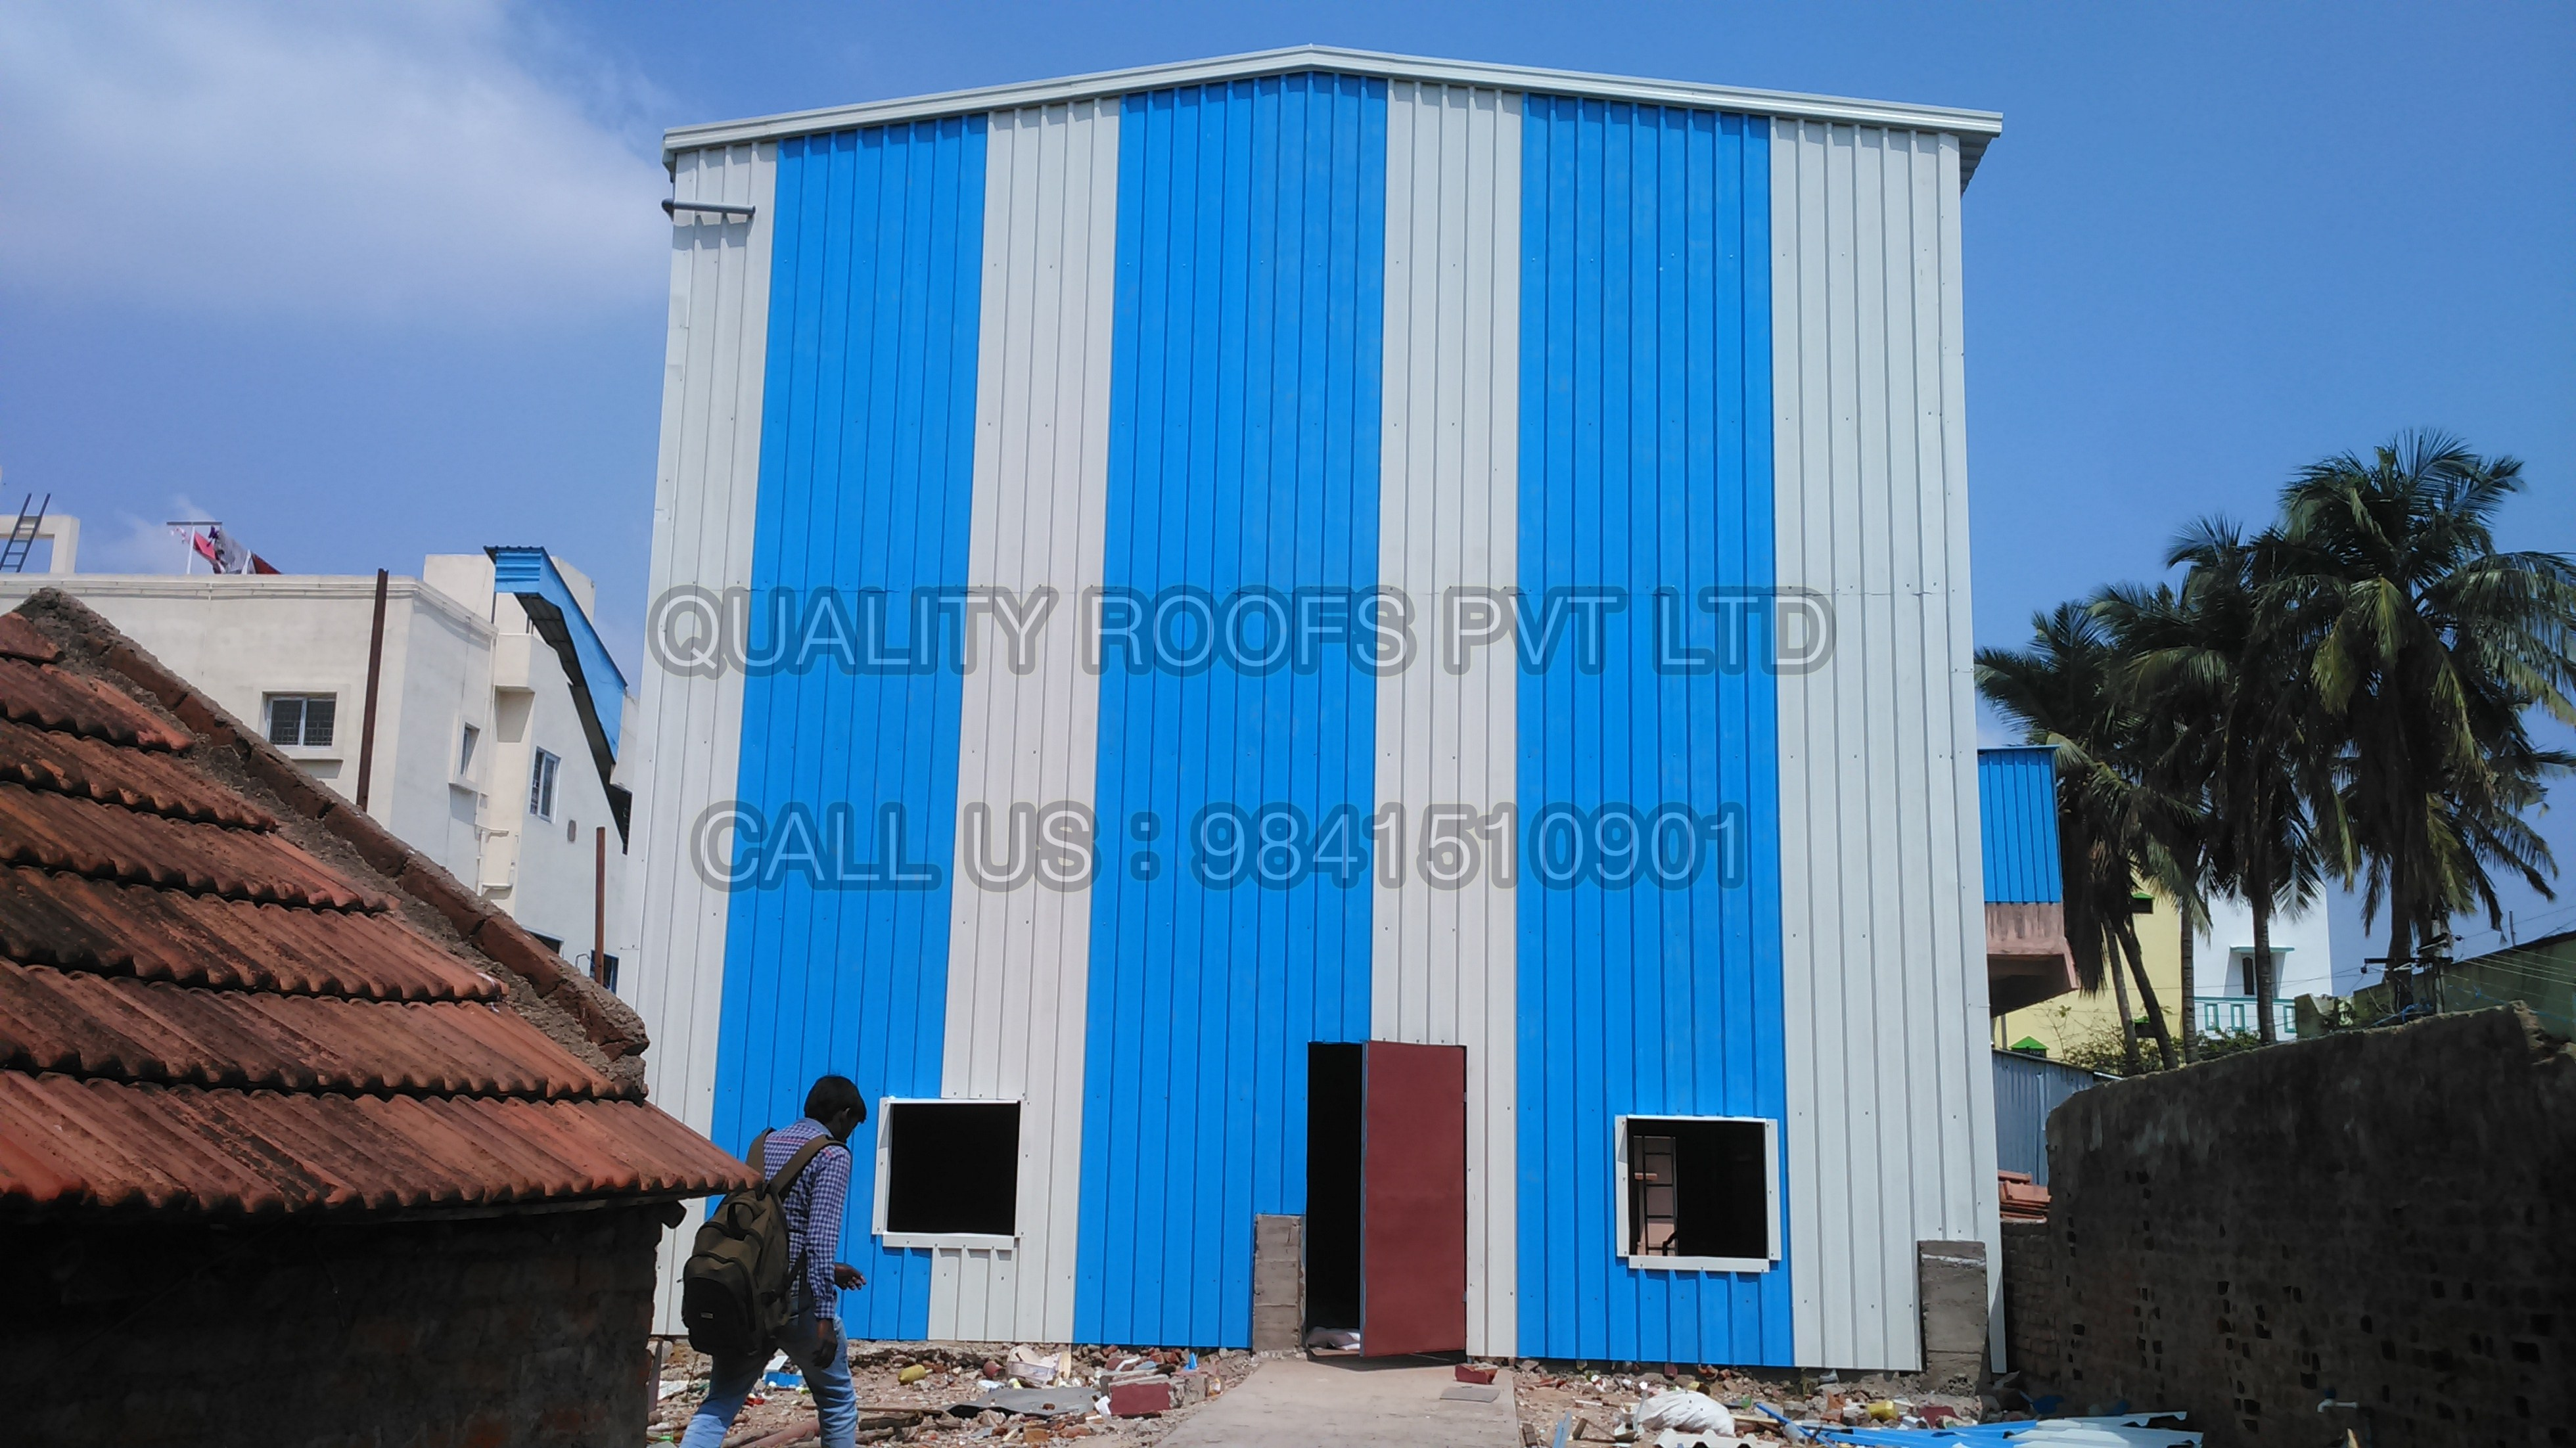 Best Badminton Roofing Contractors In Chennai  We are the leading Badminton Roofing Contractors In Chennai, we undertake all kinds of Badminton Roofing Sheds using best quality Roofing sheets with cost effective price.